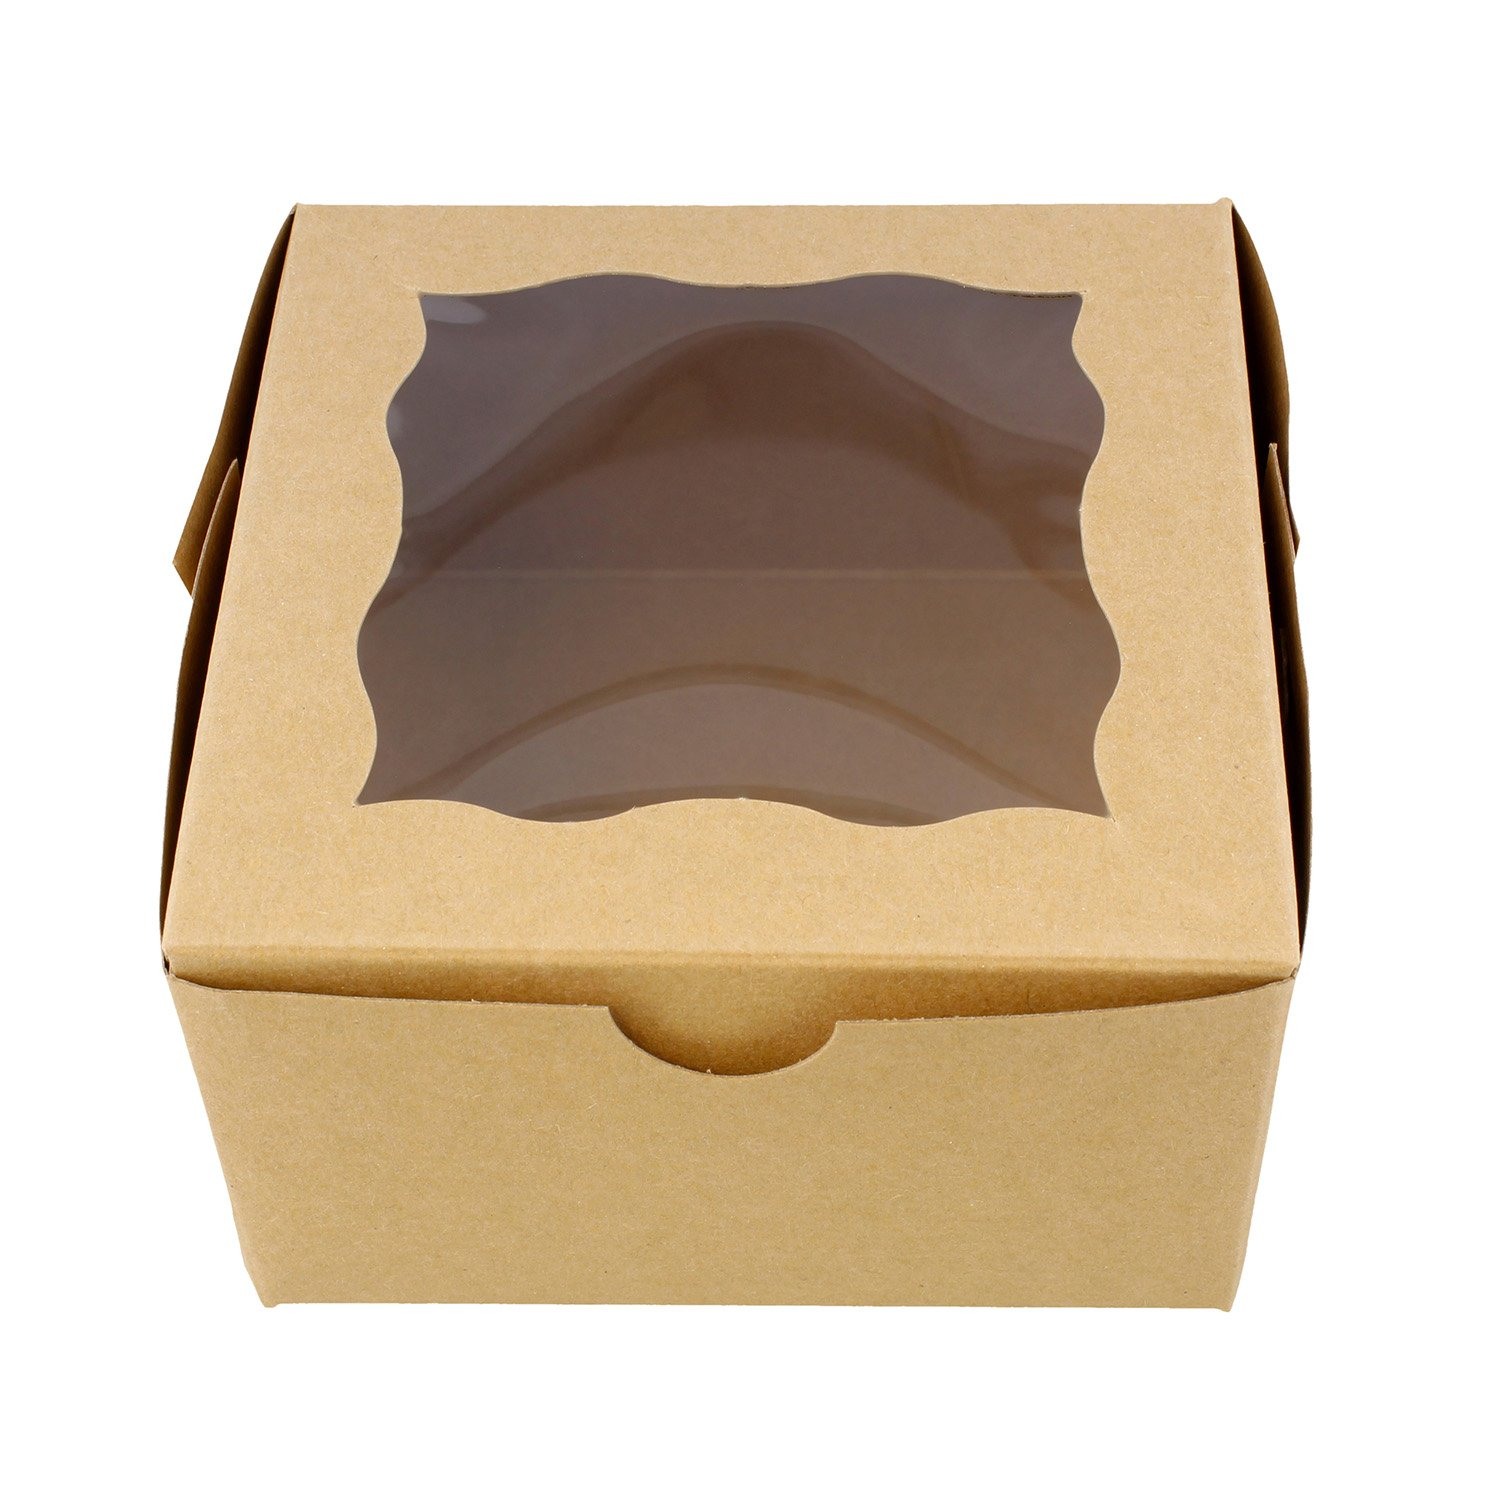 Spec101 Brown Bakery Boxes with Window, 25pk - 4in x 4in Cake Boxes, Party Favor Boxes, Candy Boxes, Dessert Boxes